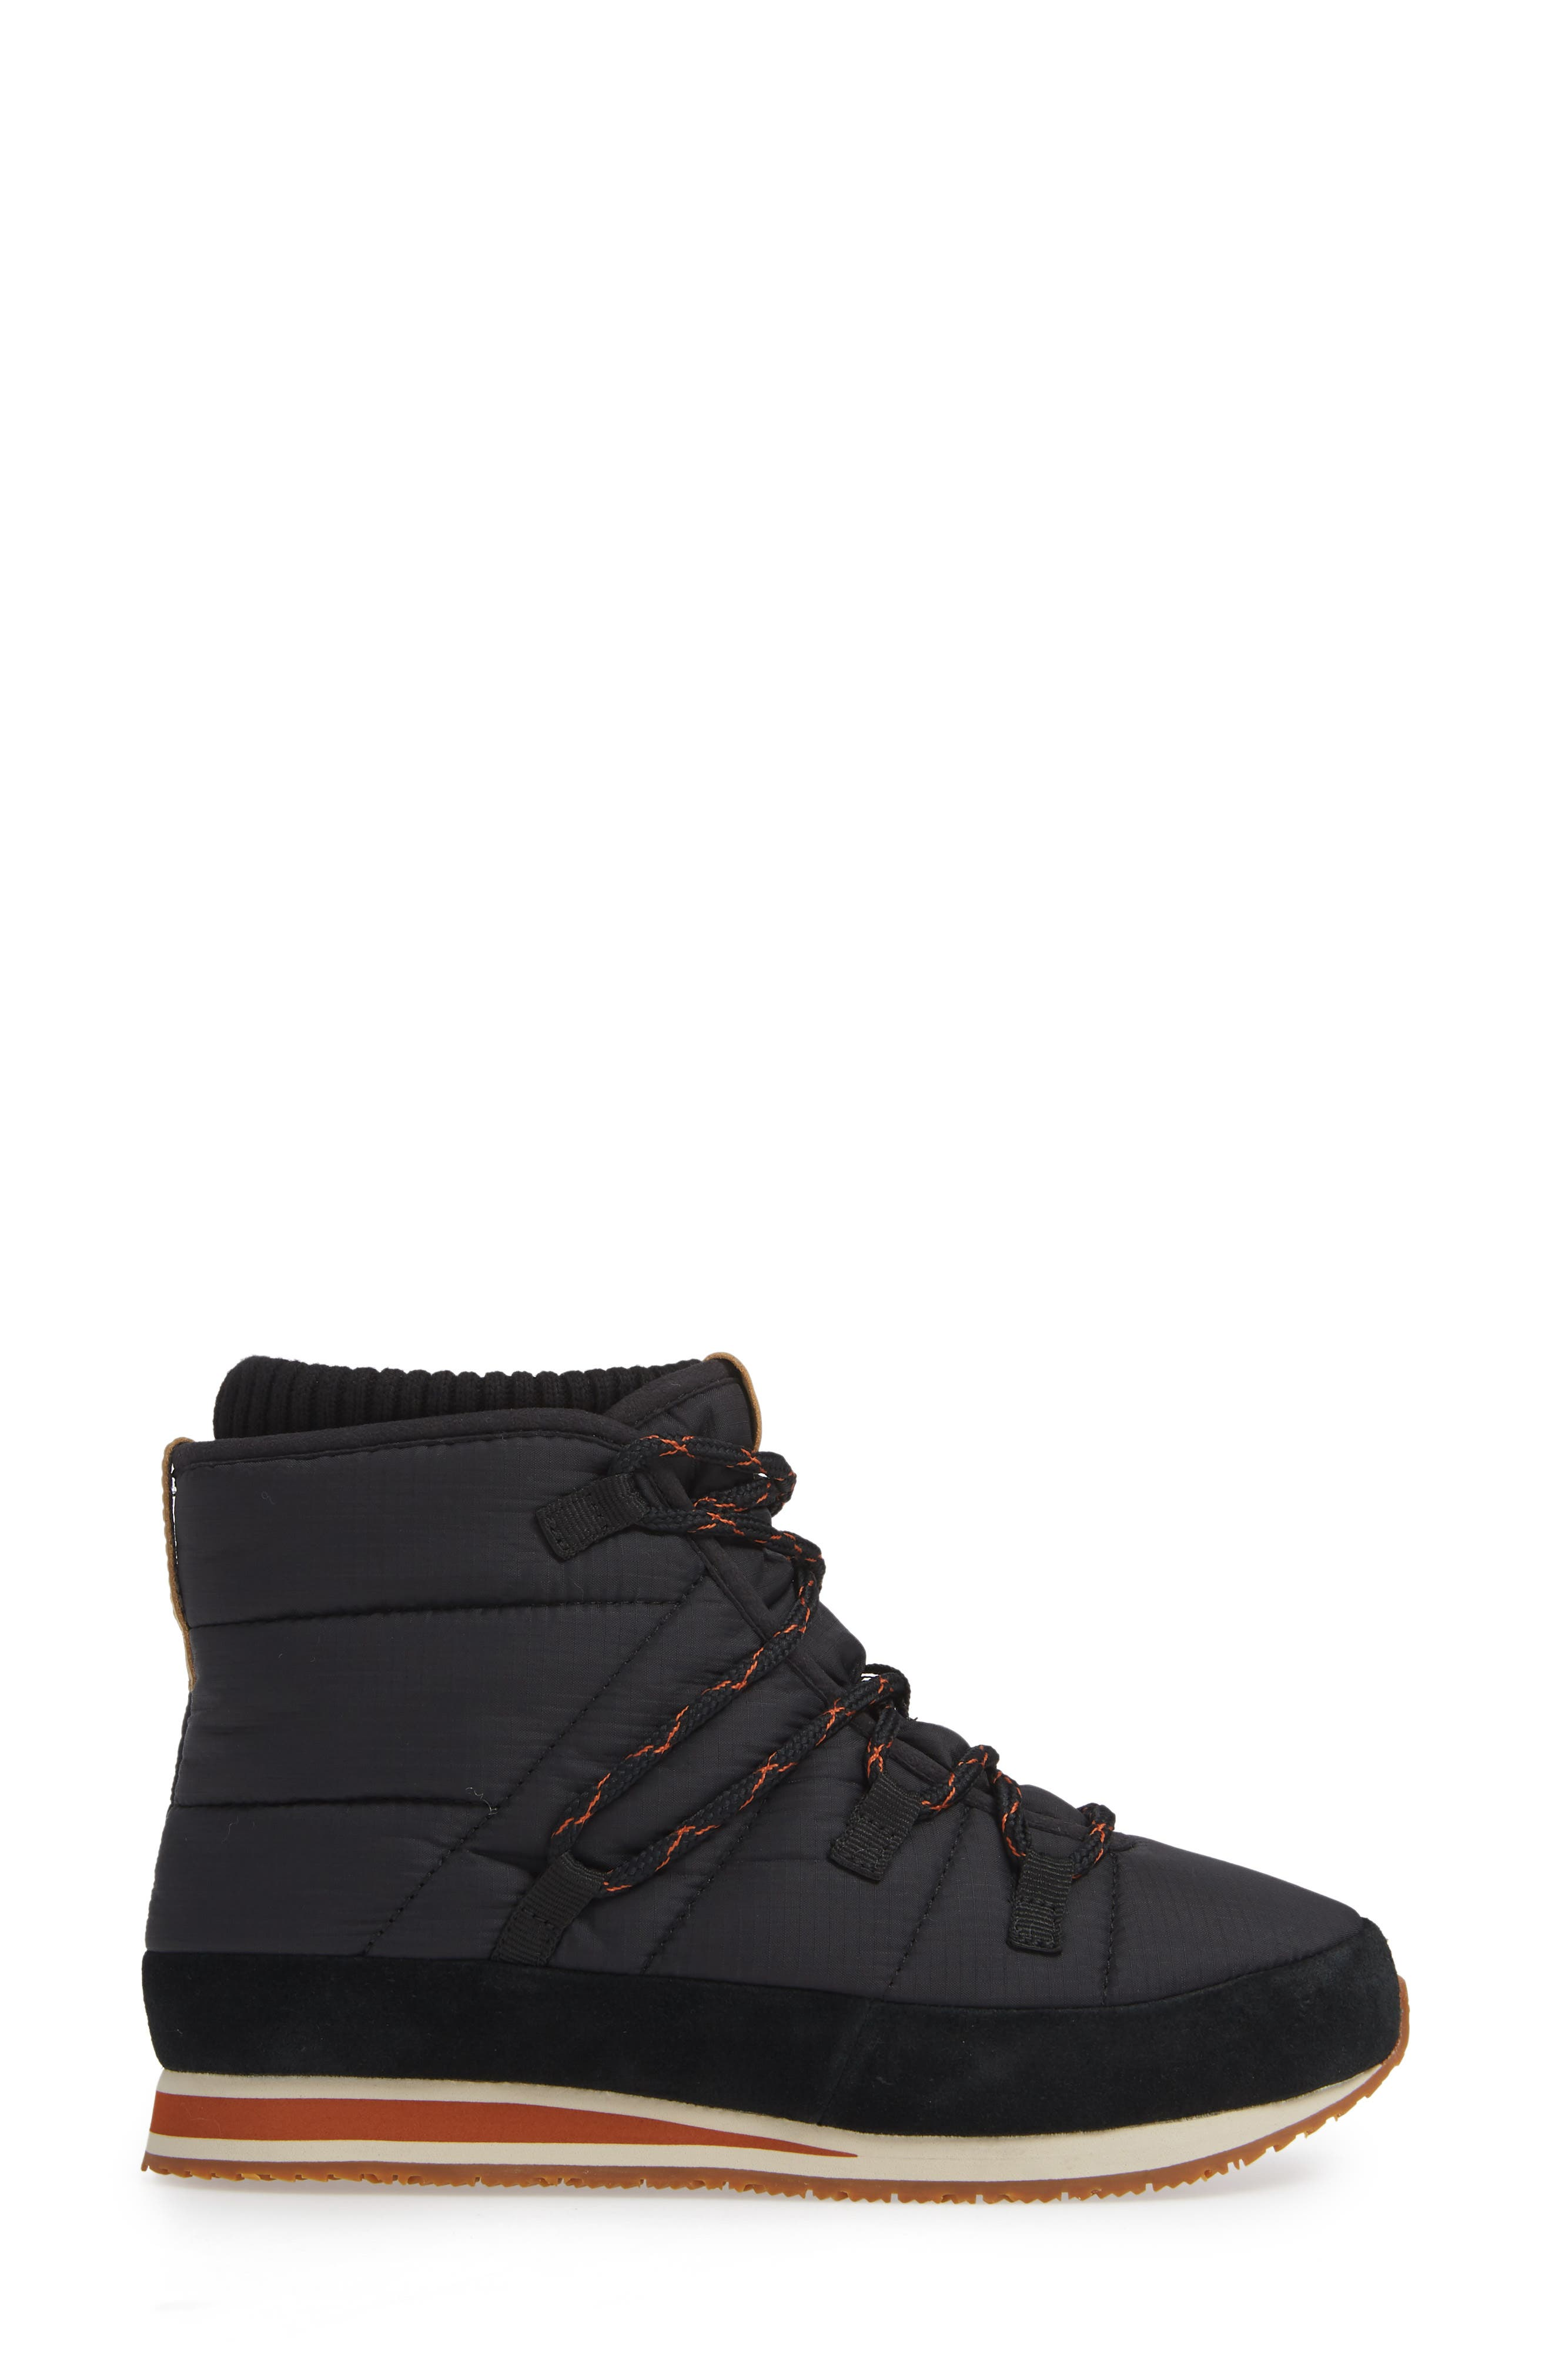 Ember Lace-Up Winter Bootie,                             Alternate thumbnail 3, color,                             BLACK FABRIC